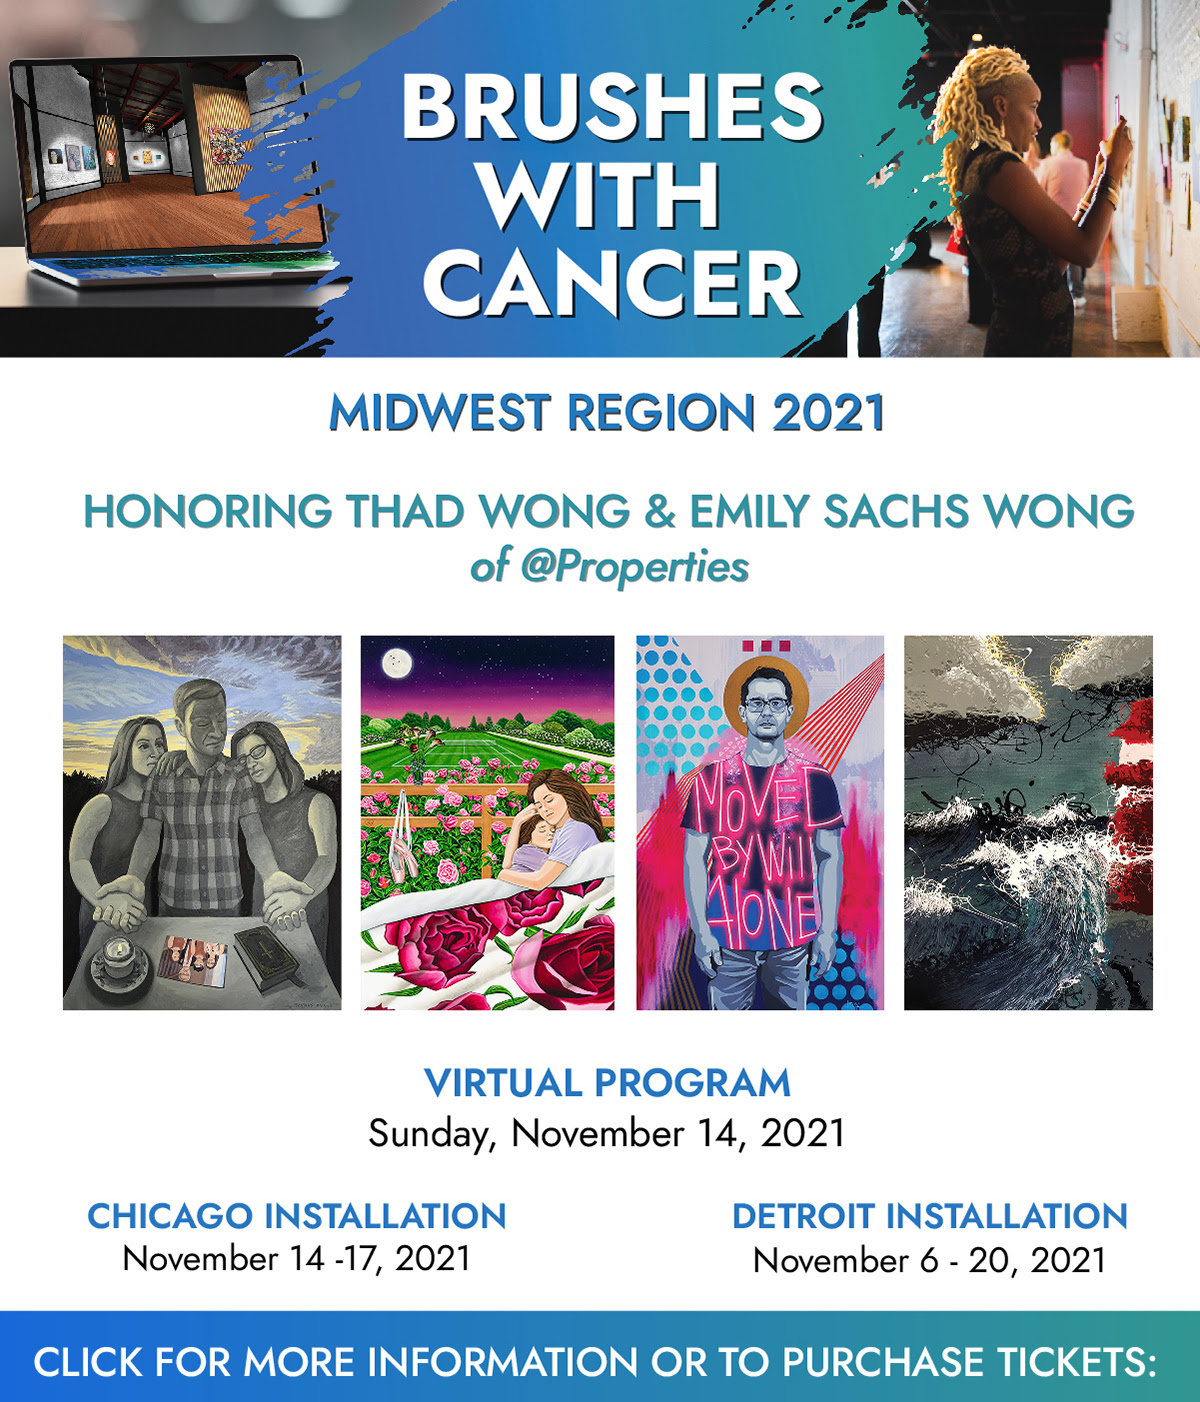 Twist Out Cancer Celebrates 10th Anniversary at Midwest Brushes with Cancer Event